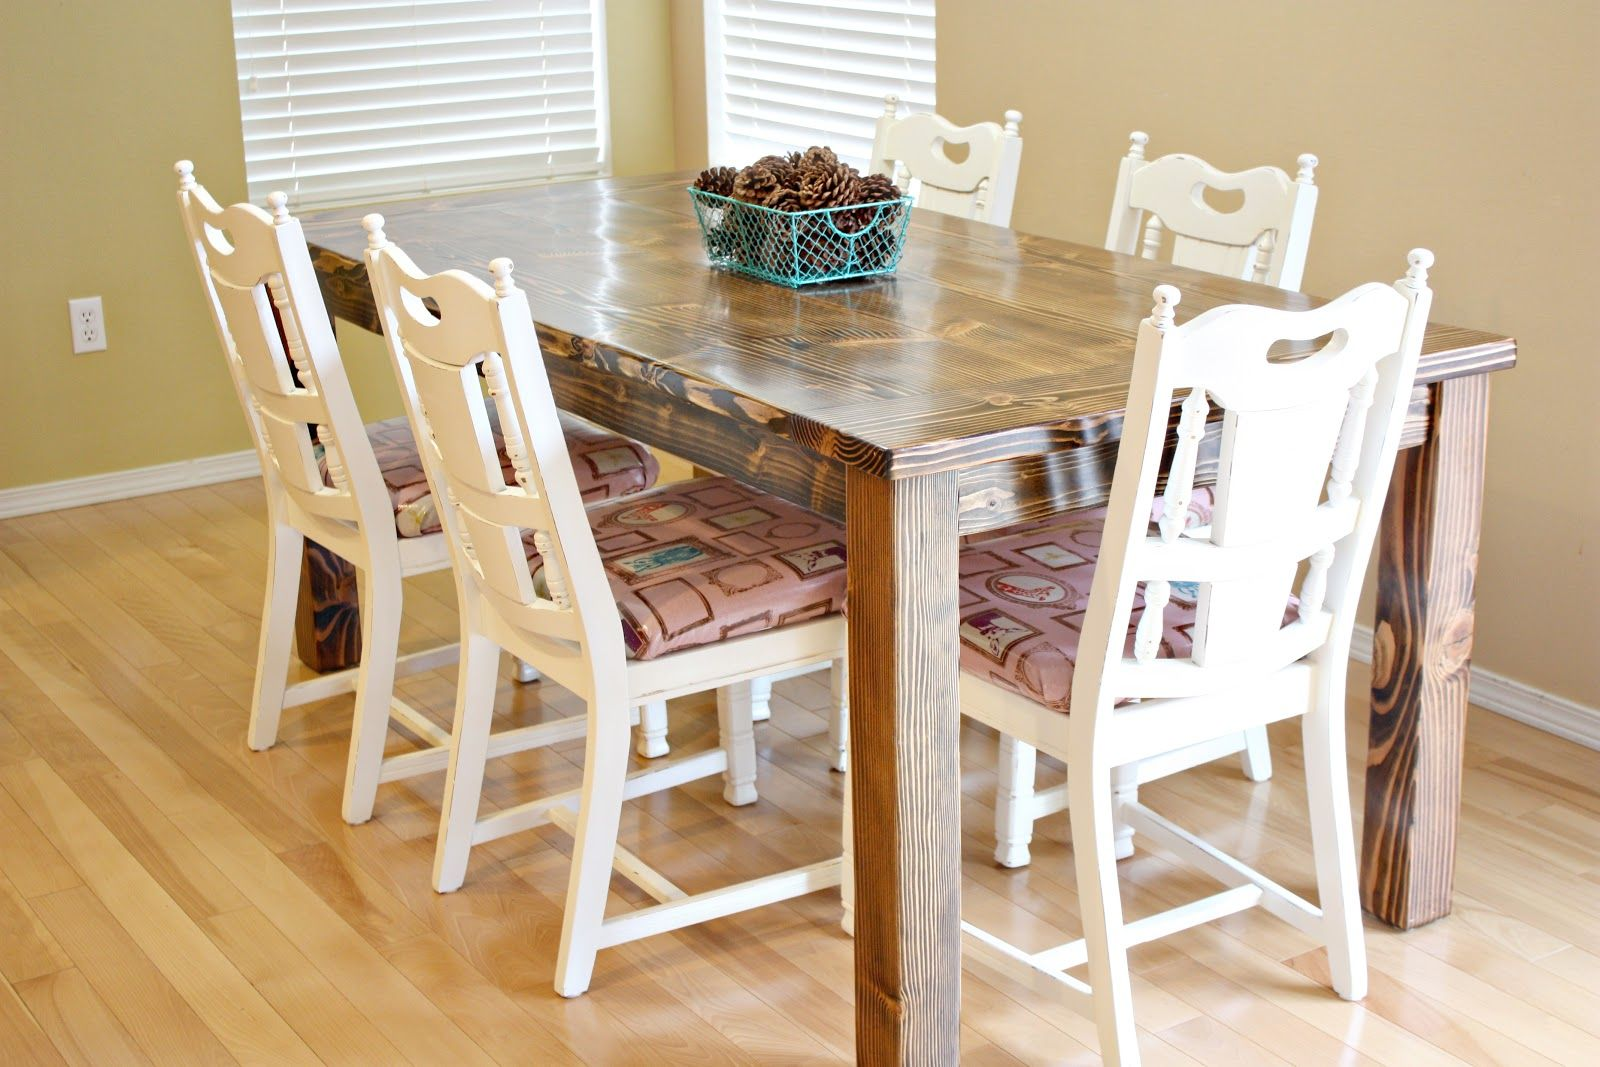 Sew Much Ado How To Reupholster Chairs With Laminated Cotton Classy Restoring Dining Room Table 2018